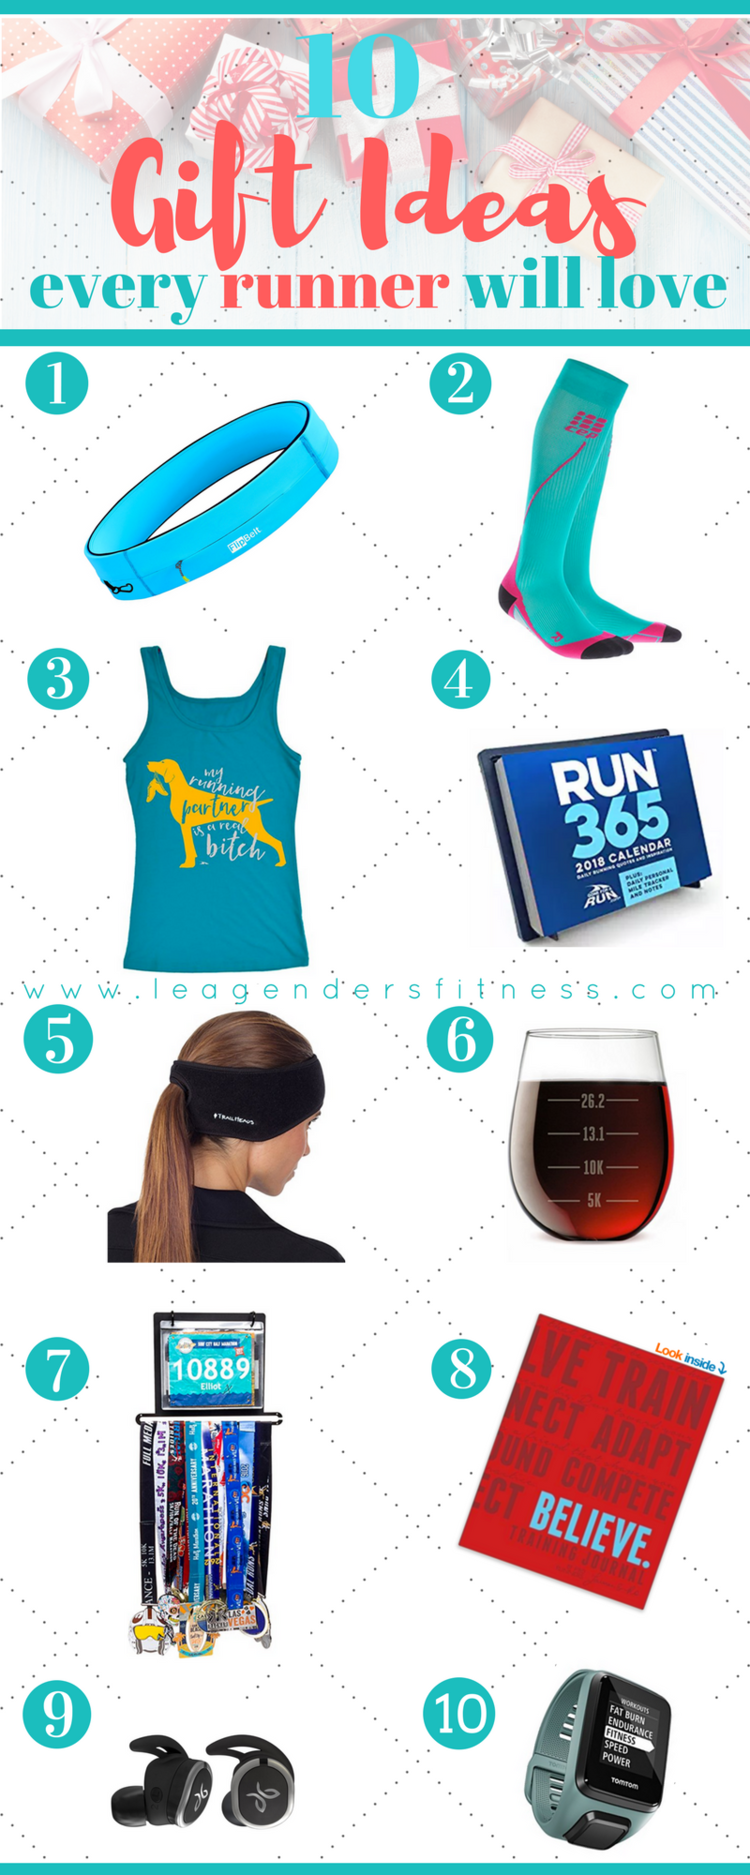 10 gift ideas every runner will love lea genders fitness 10 gift ideas every runner will love save to pinterest negle Choice Image